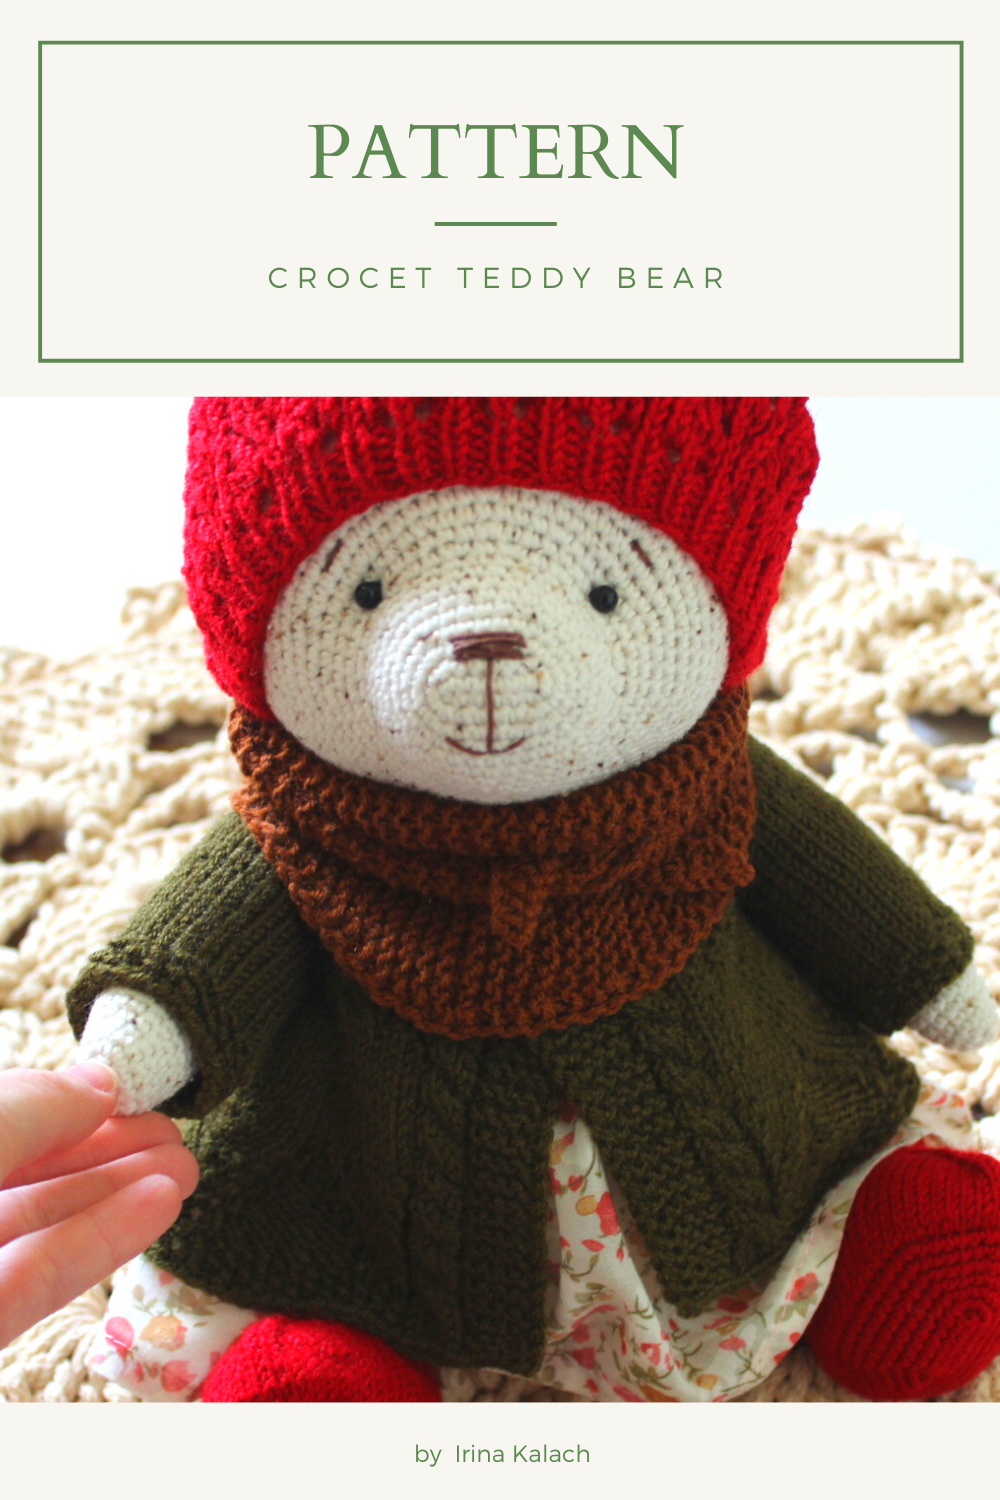 PATTERN Crochet Teddy bear. PATTERN Amigurumi Teddy bear.